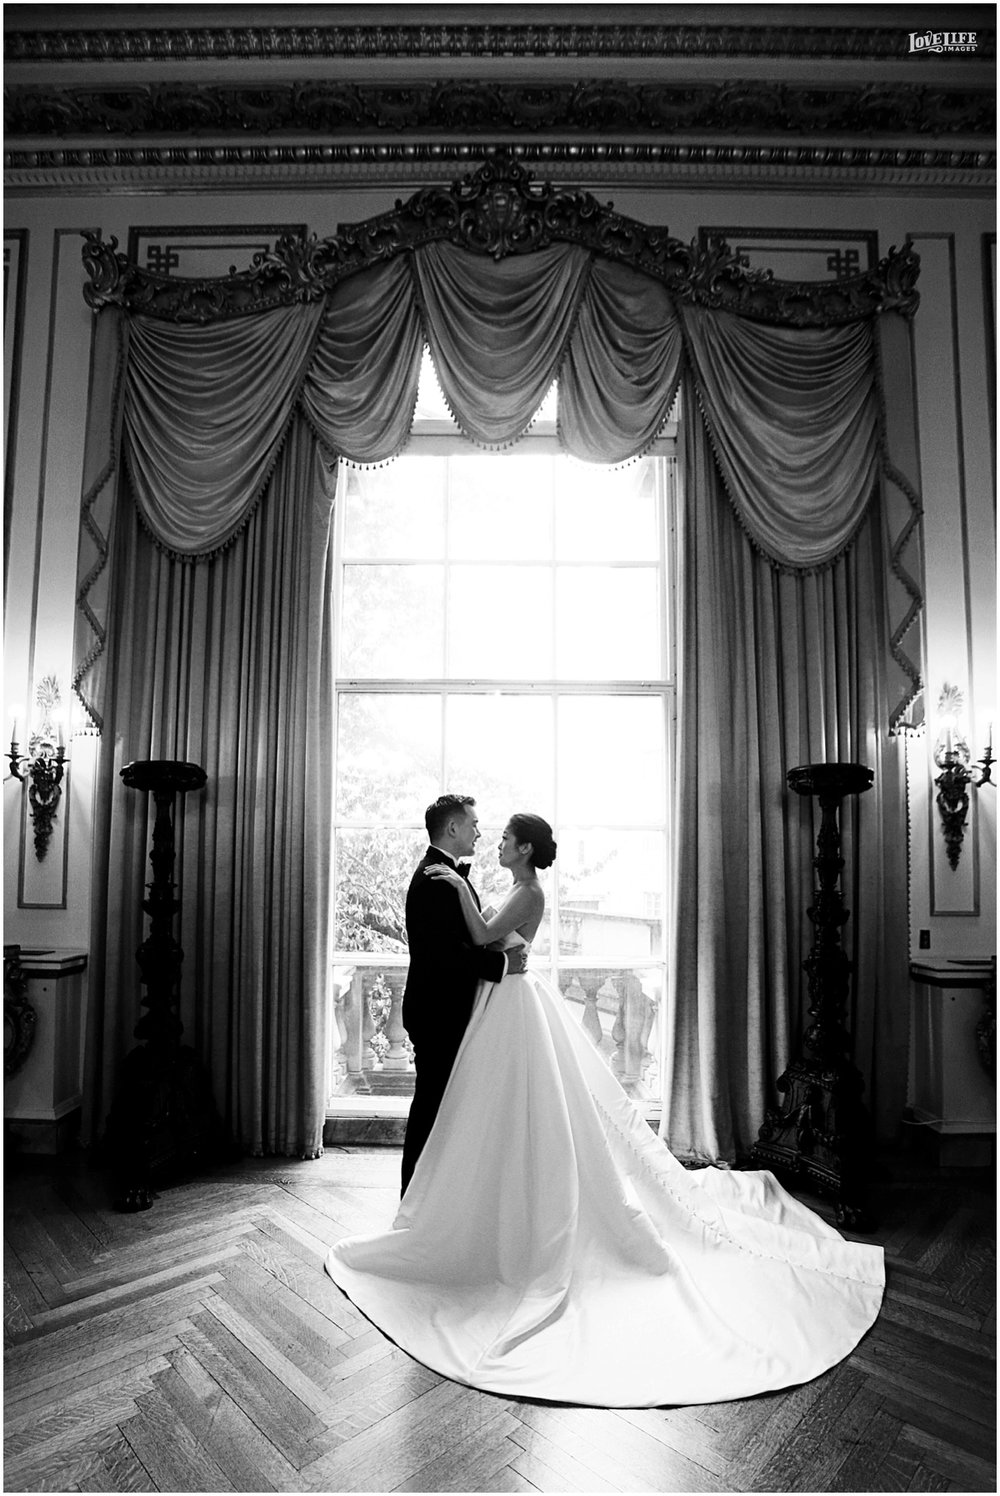 Anderson House DC Wedding elegant black and white portrait.jpg